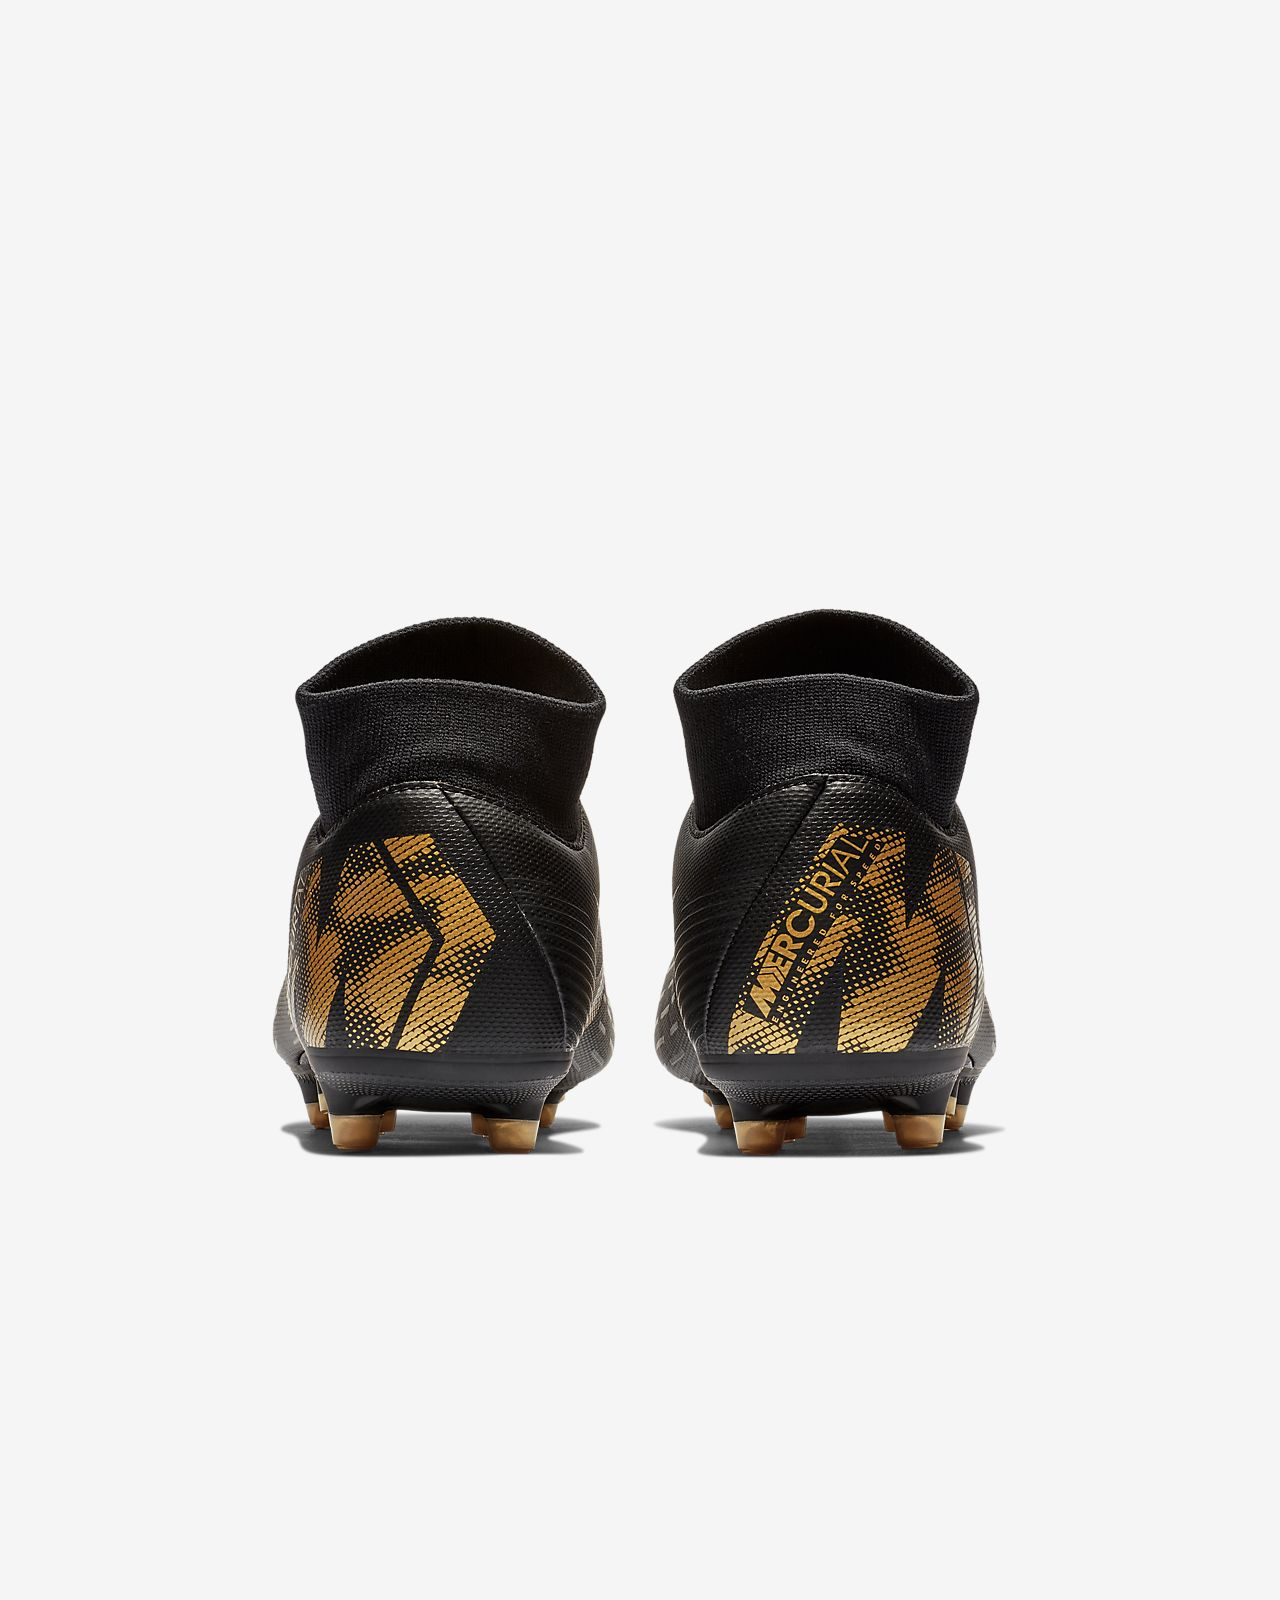 c5d922787175 Nike Mercurial Superfly 6 Academy MG Multi-Ground Soccer Cleat. Nike.com